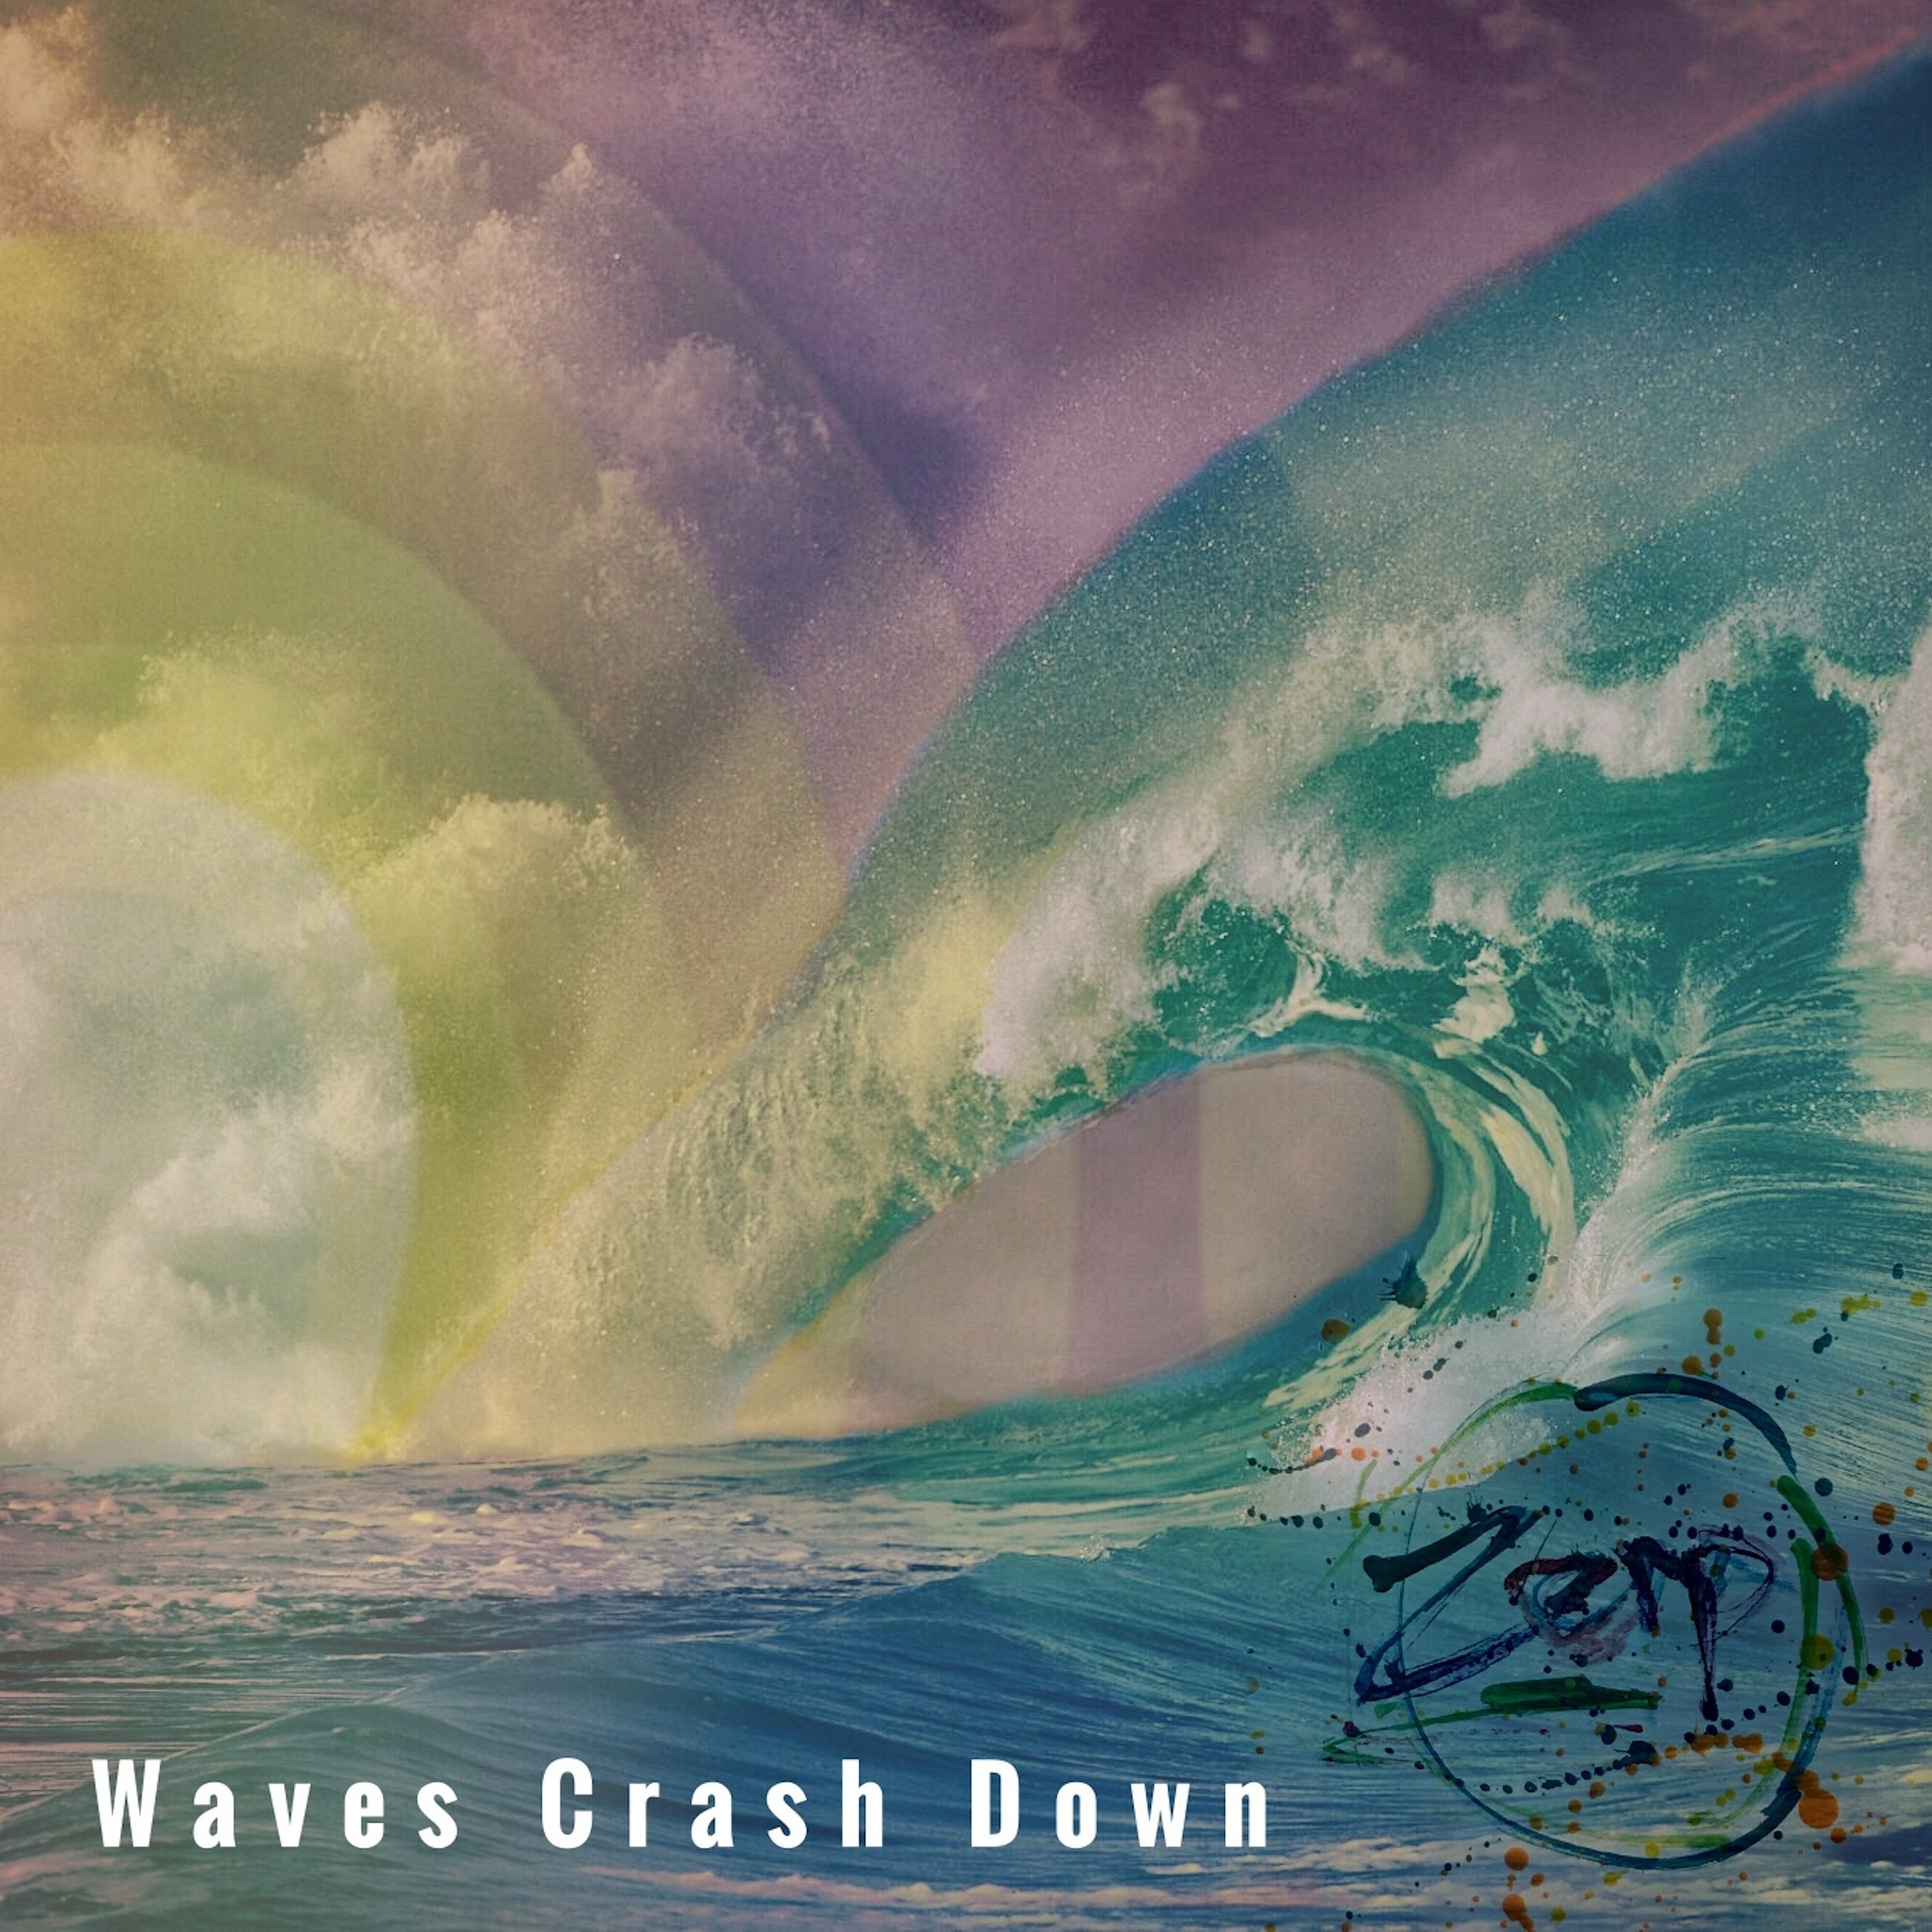 Waves Crash Down - Single, w/ remixes  (3 tracks) Electronic.  Experimental.  Pensive.